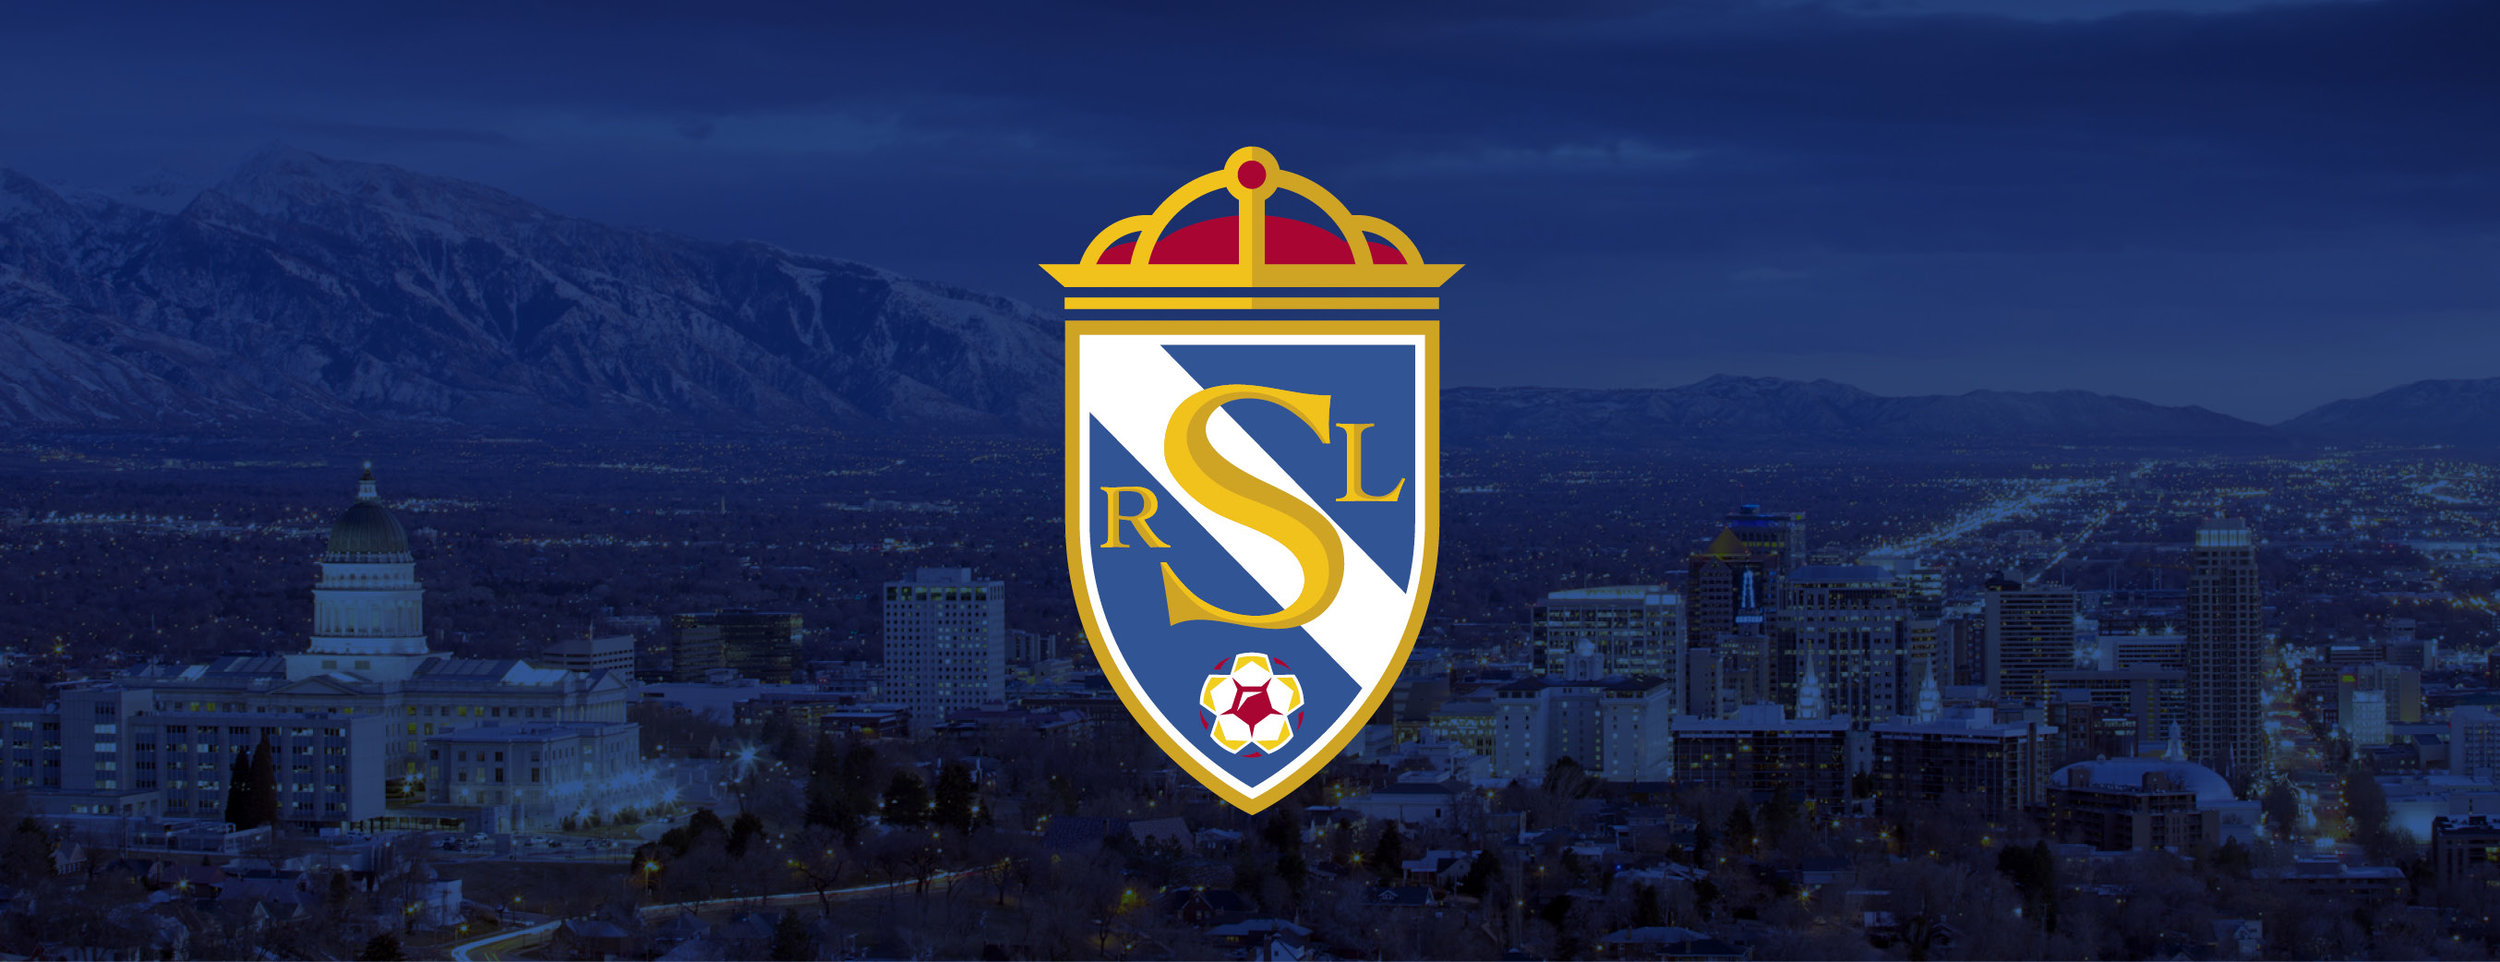 My interpretation of Real Salt Lake based off the colors of their sister club, Real Madrid.